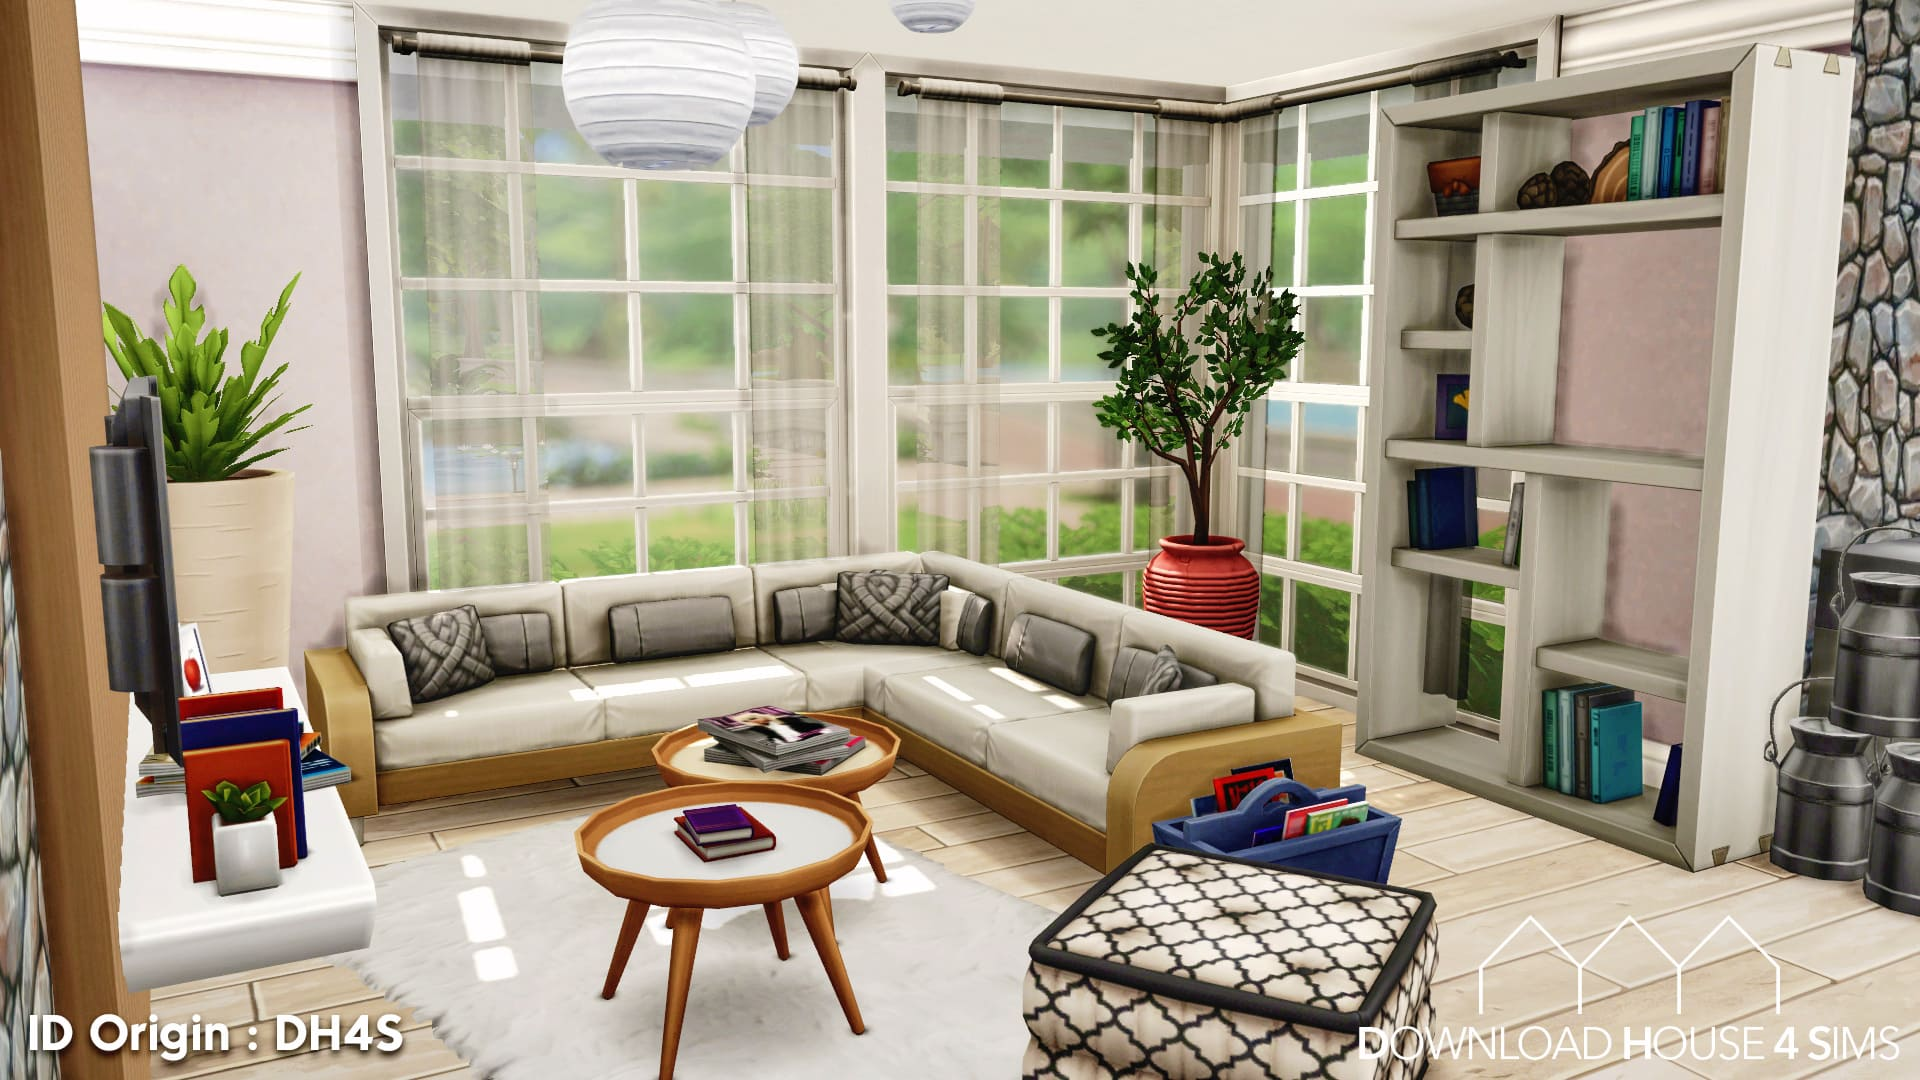 Family-Cottage-Sims-4-DH4S-download-house-4-sims-13